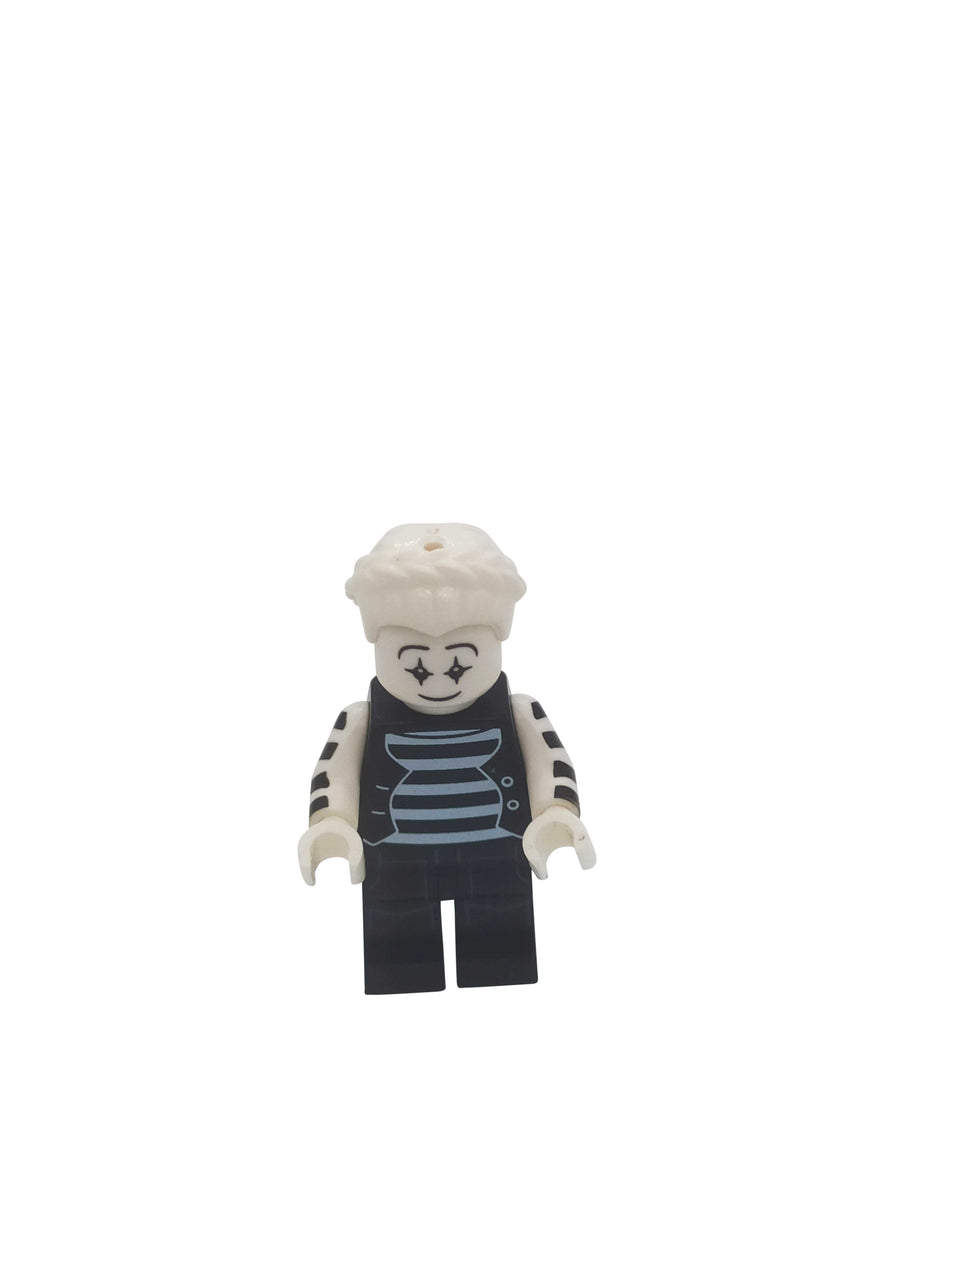 minifigure with a black and white suit with white hair - Lego